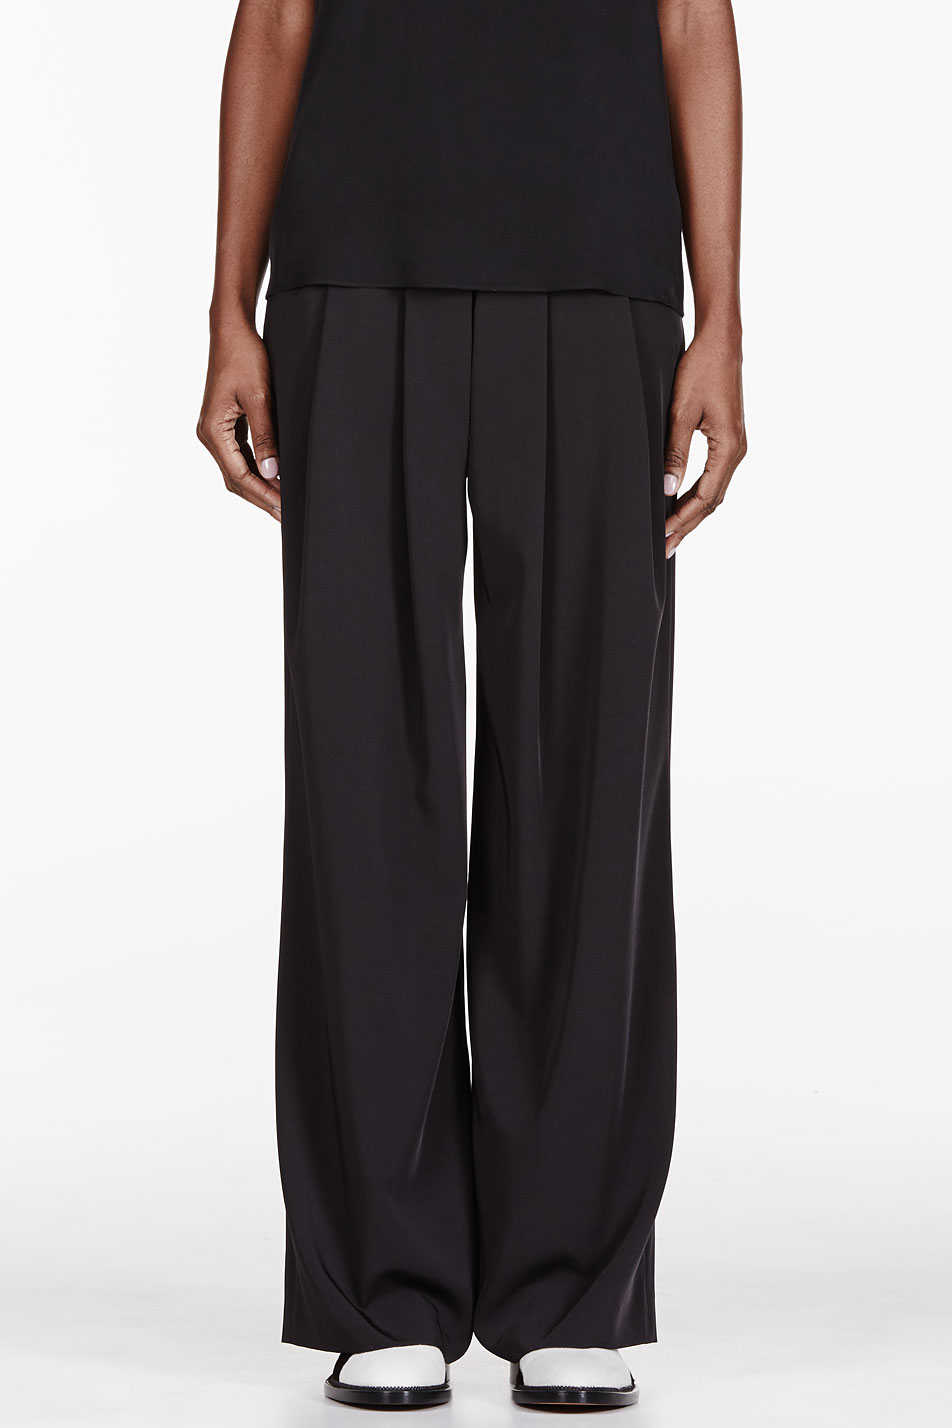 altuzarra black wide leg pleated trousers